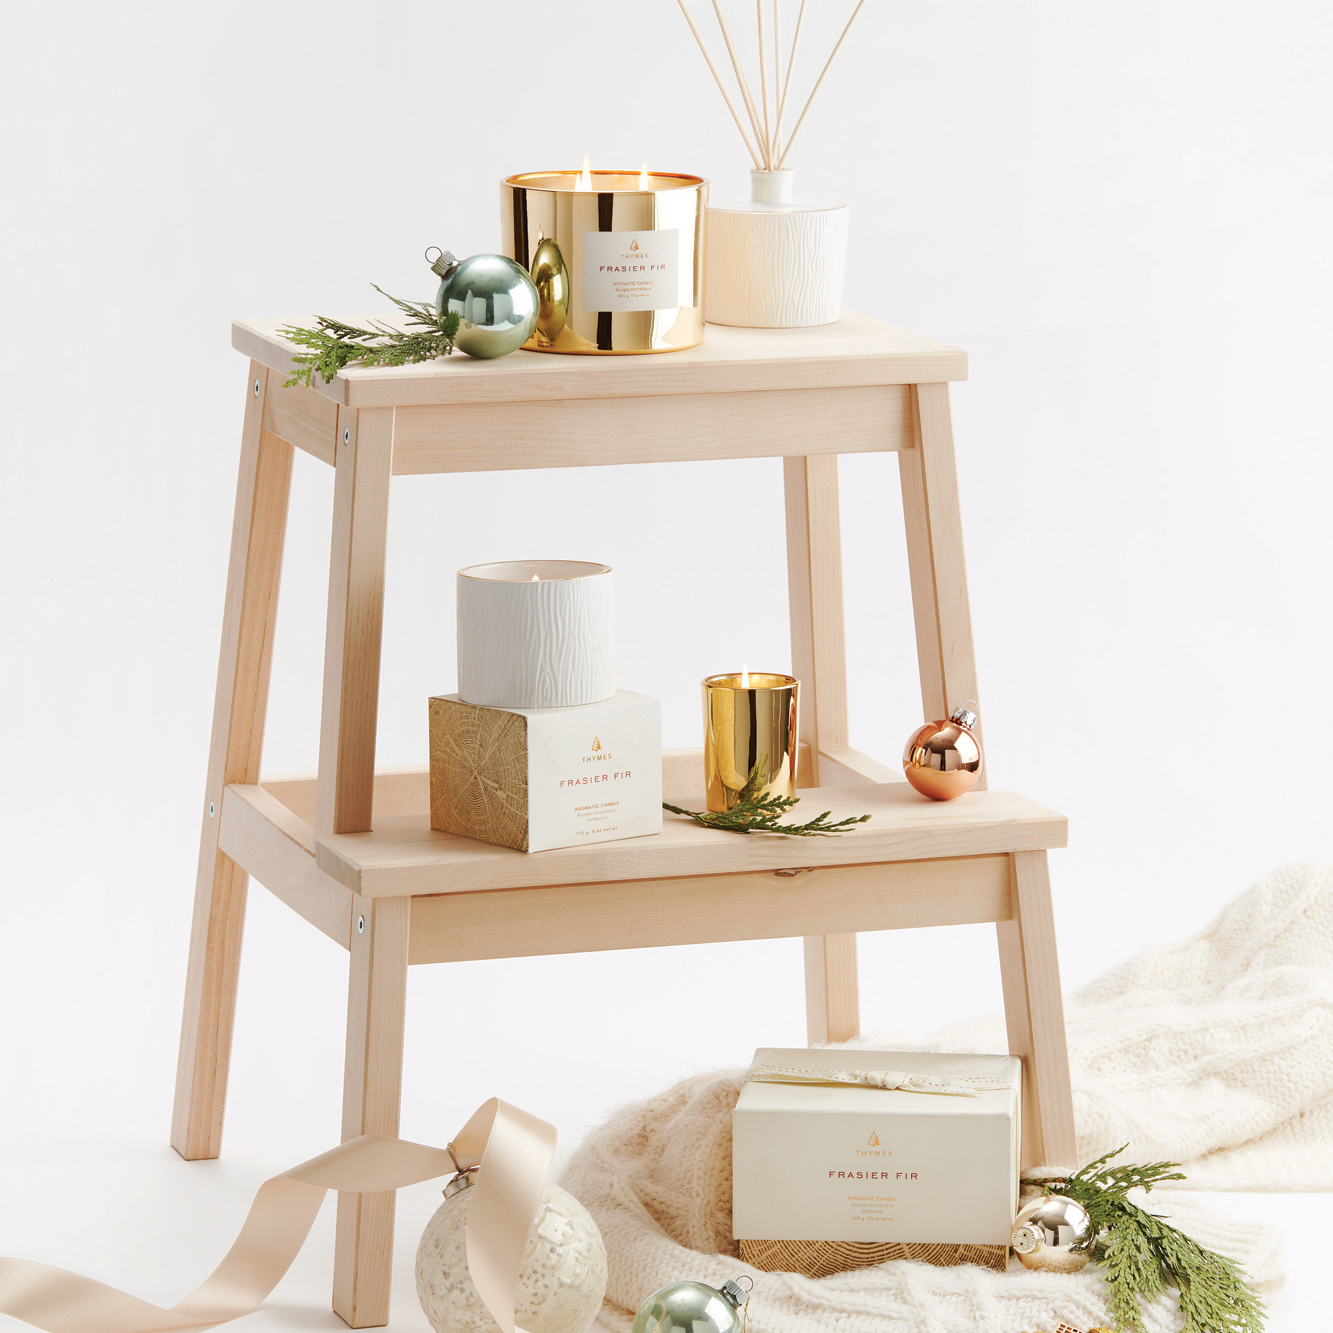 Thymes-Frasier-Fir-Gilded-Studio-3-Holiday-2019-sq